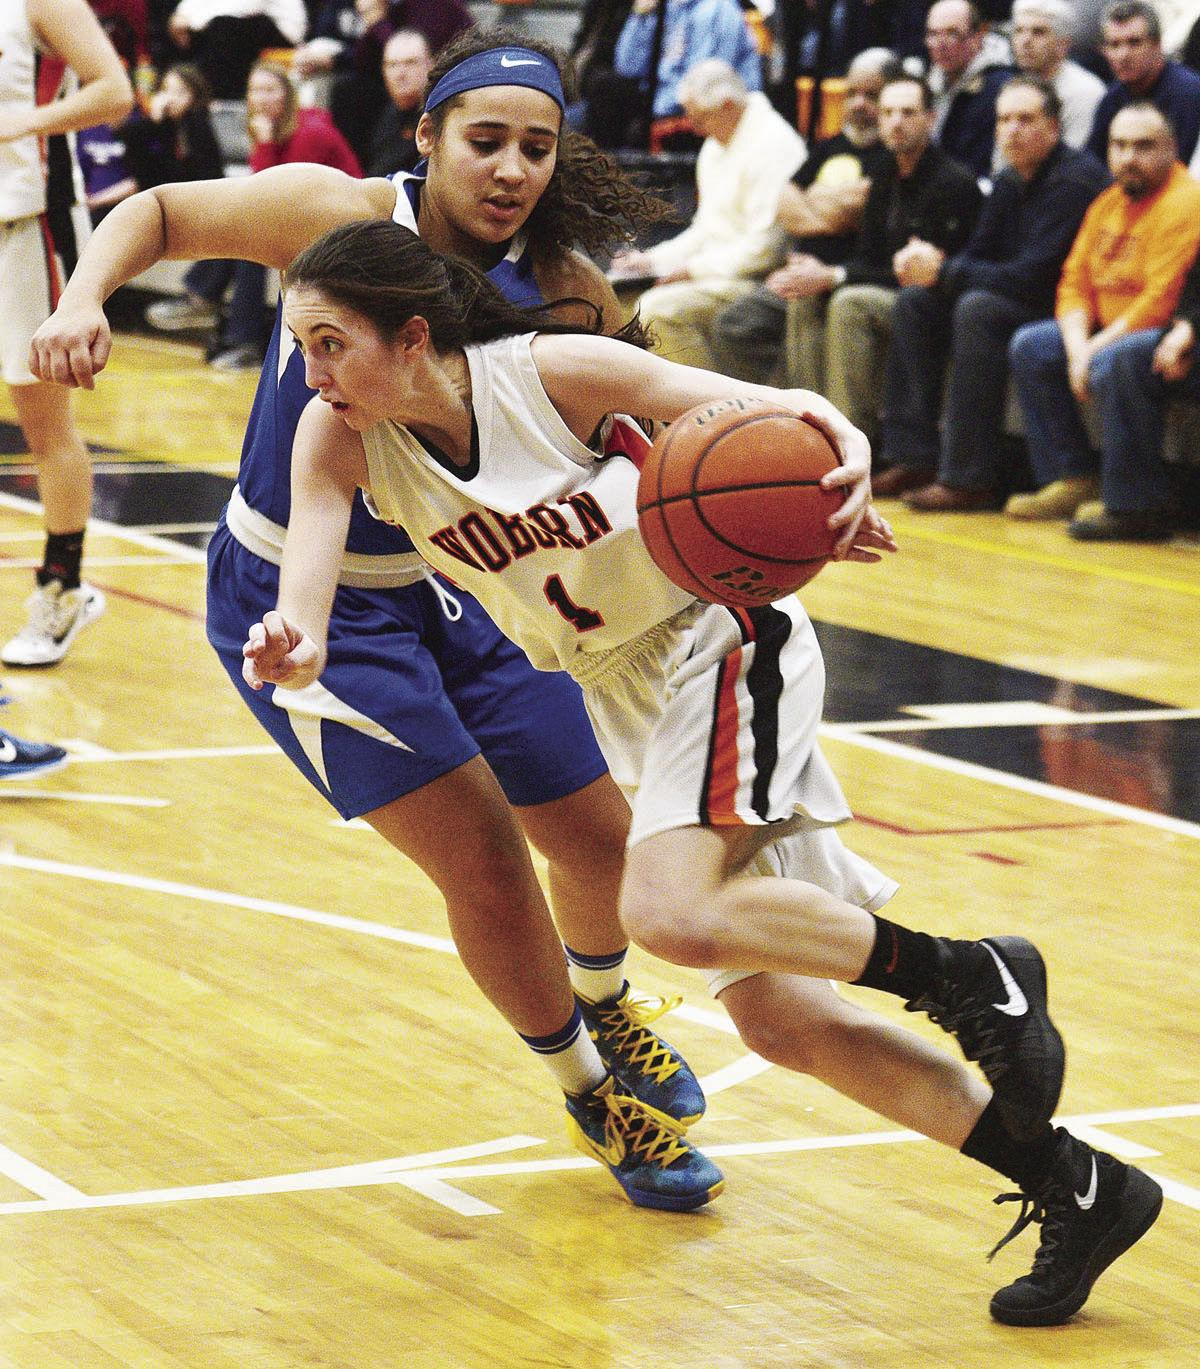 Woburn girls basketball team should be strong once again sports 58503babad99aagegresize12001369 sciox Images